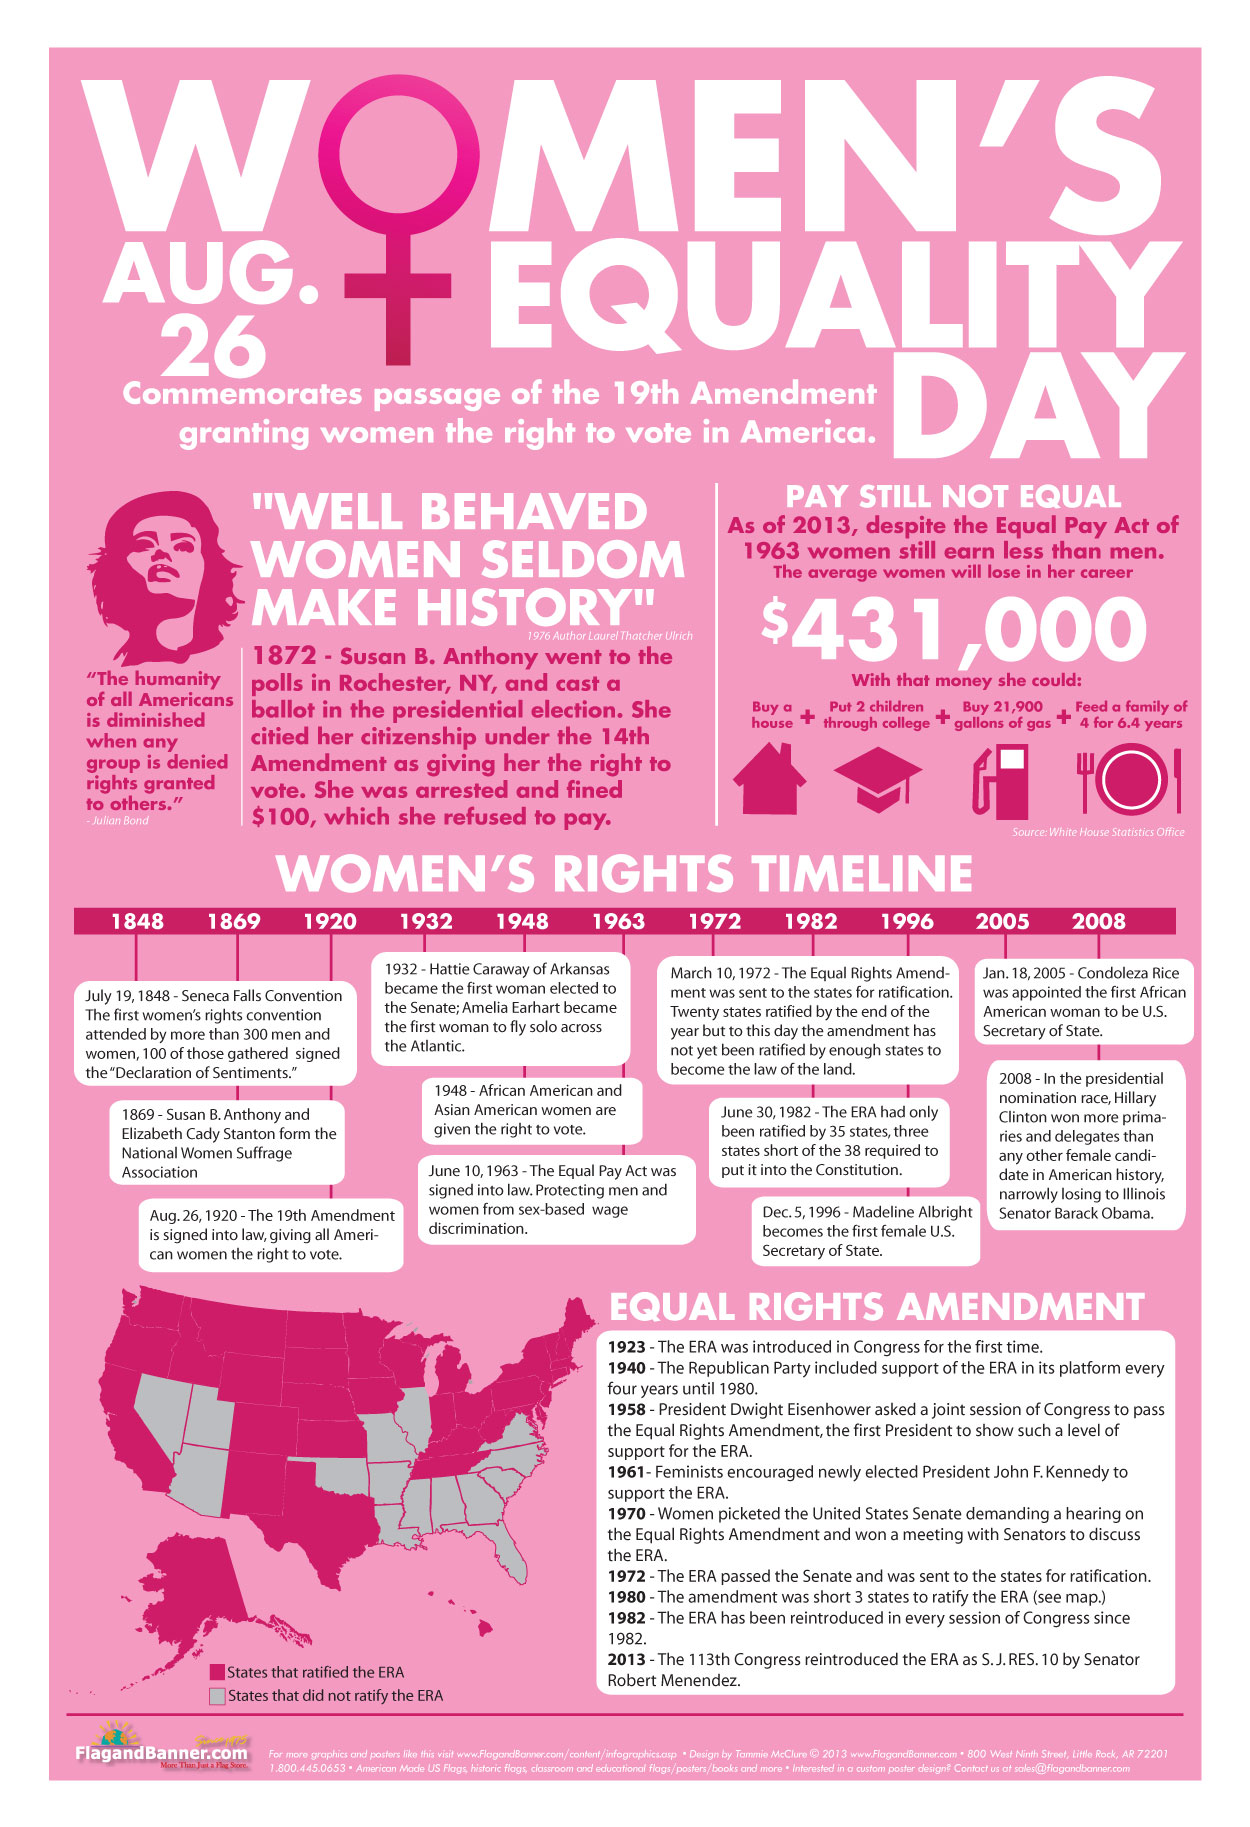 womens-equality-day-august-26_51e39943bd300